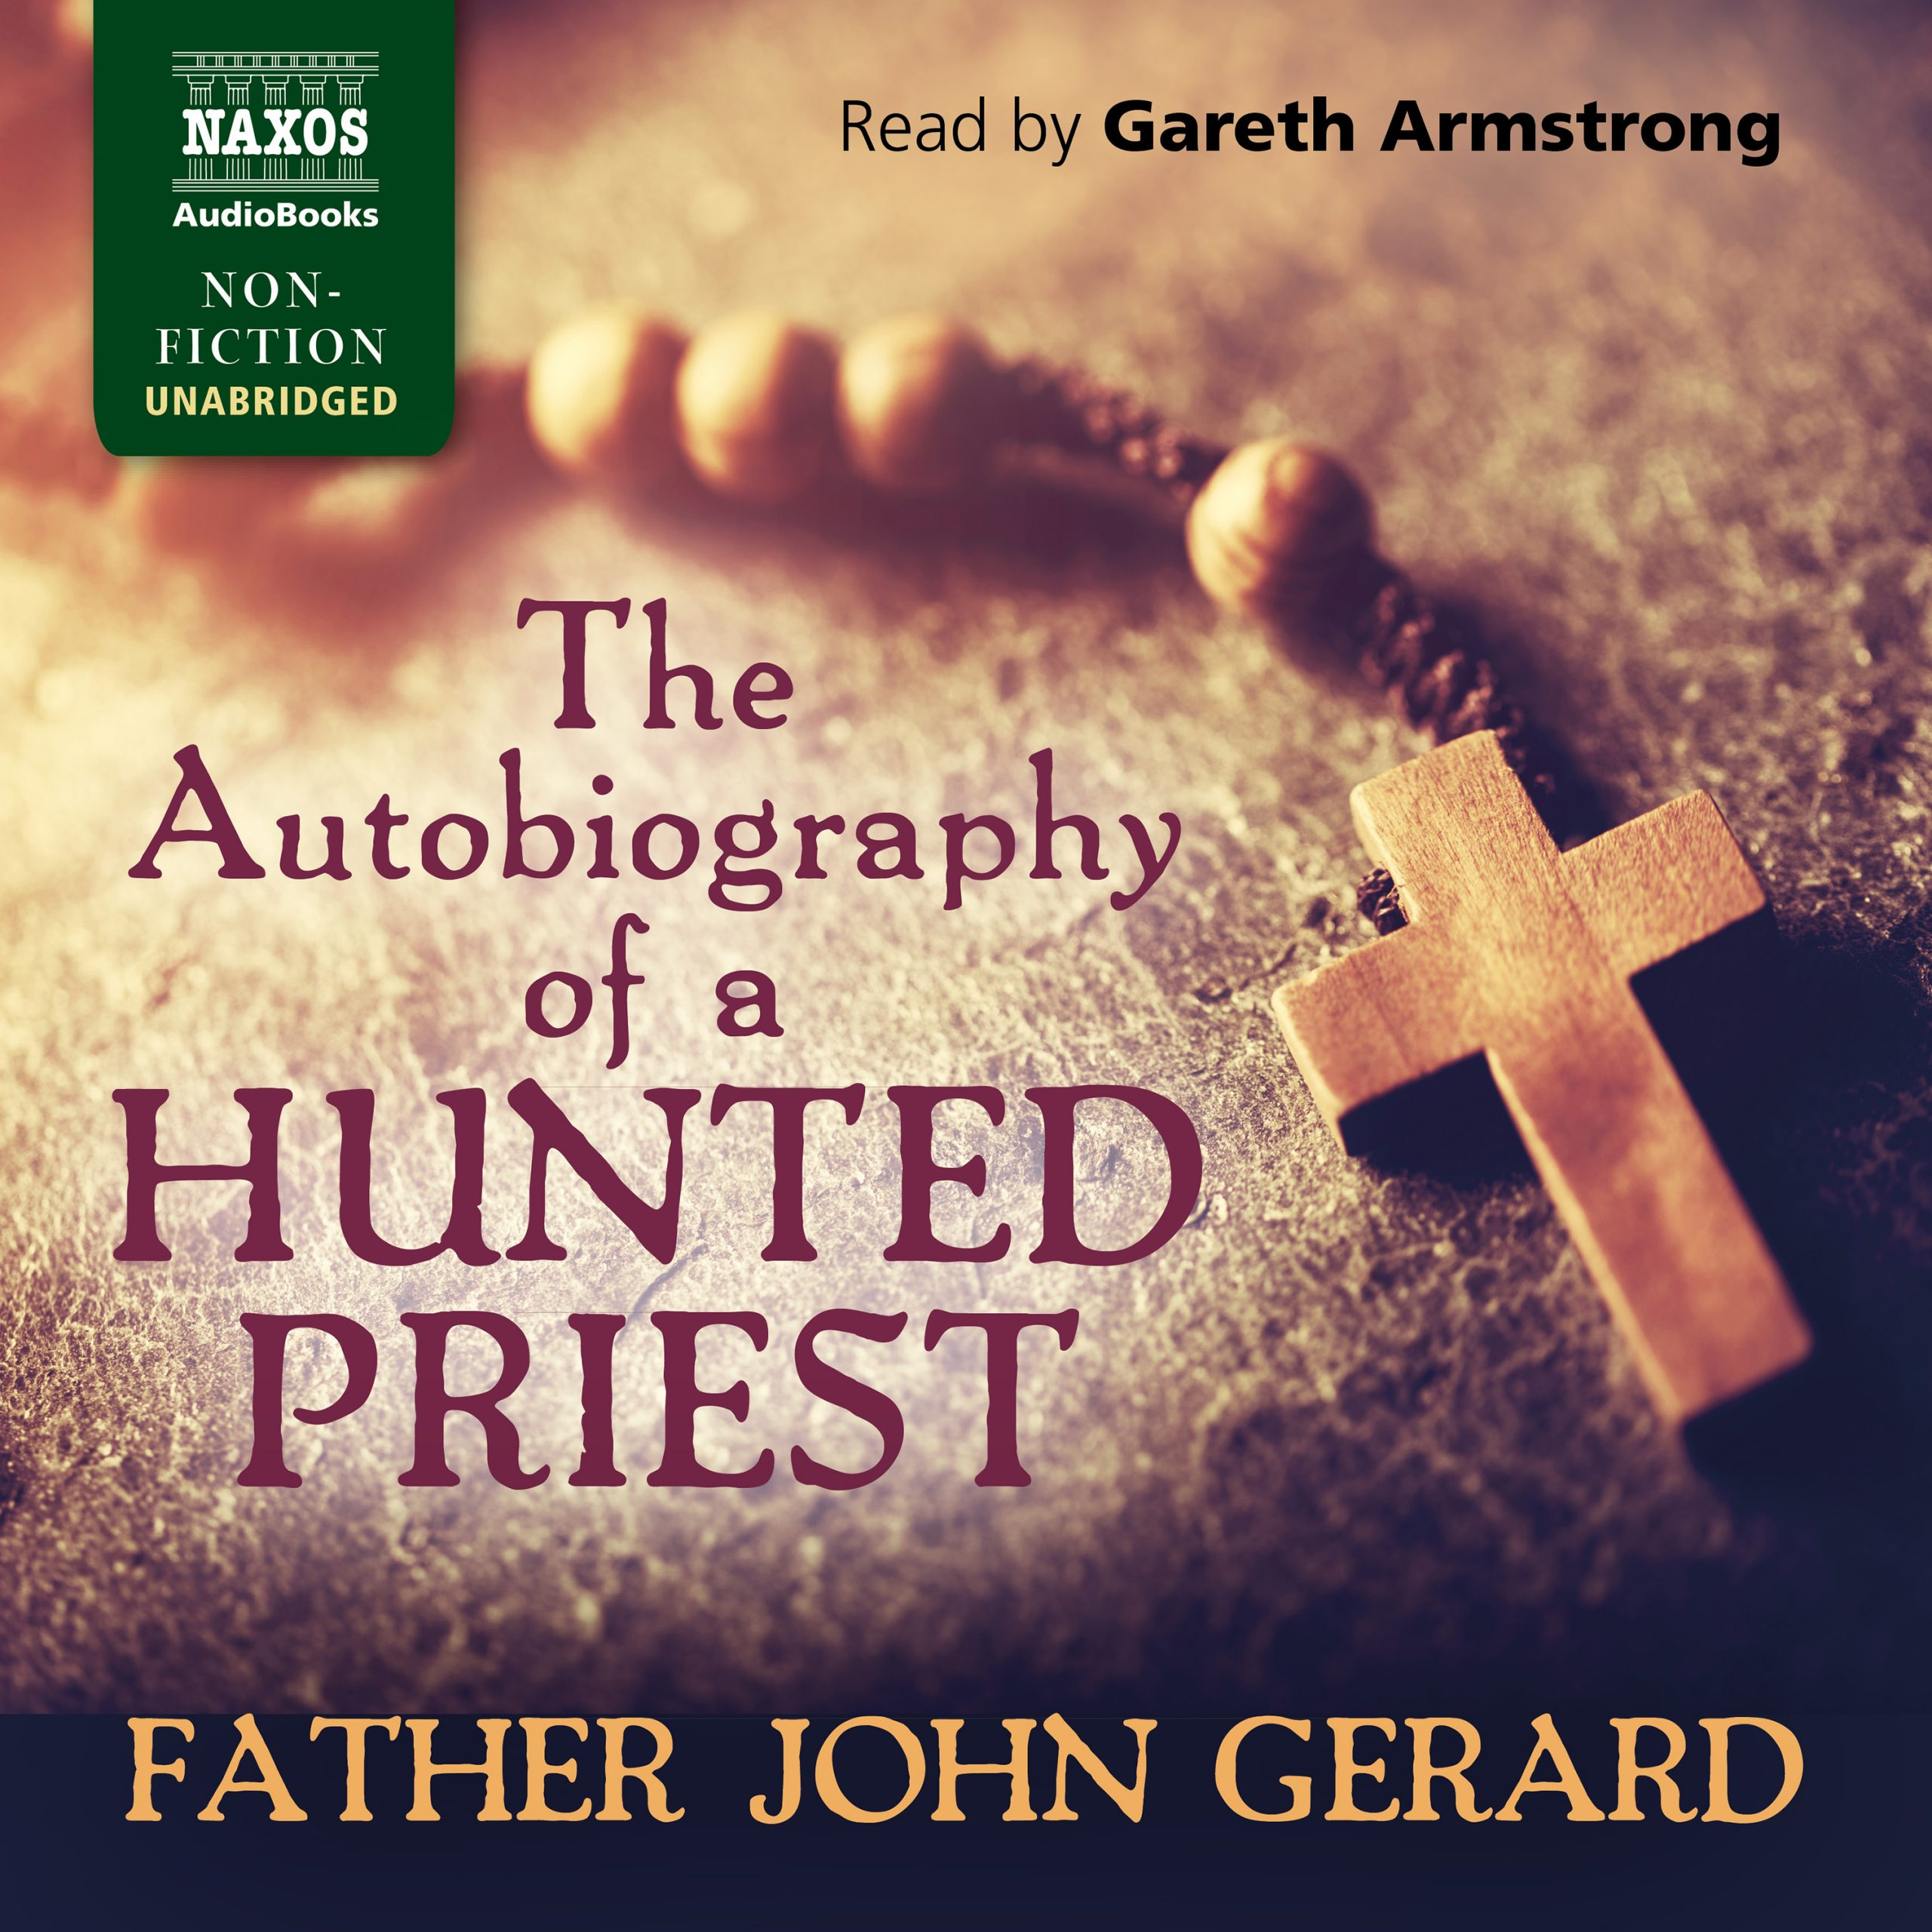 The Autobiography of a Hunted Priest (unabridged)